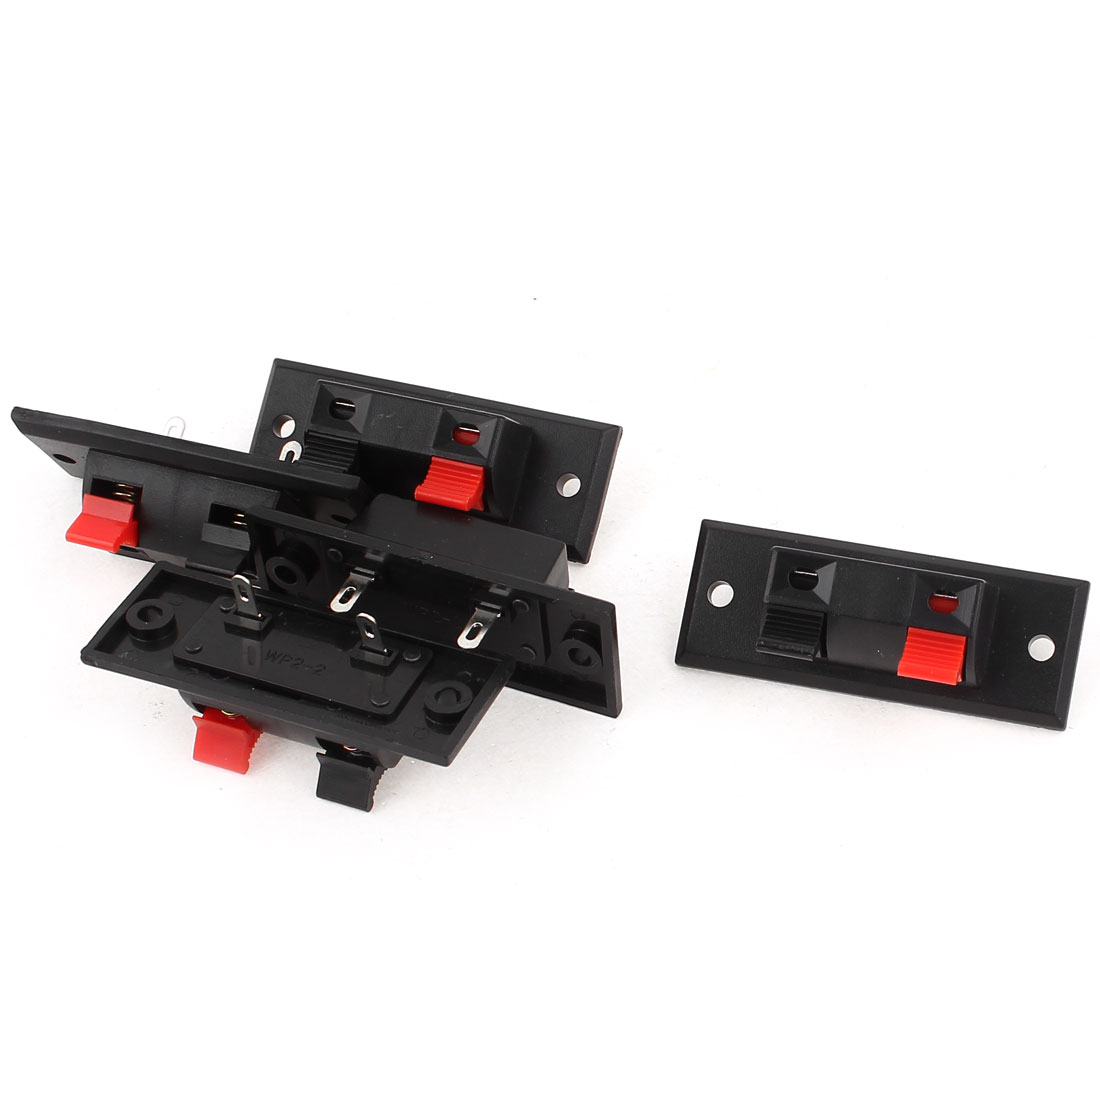 2Clip 5.5 x 2cm Red Black Push Type Audio Terminal Board Connector